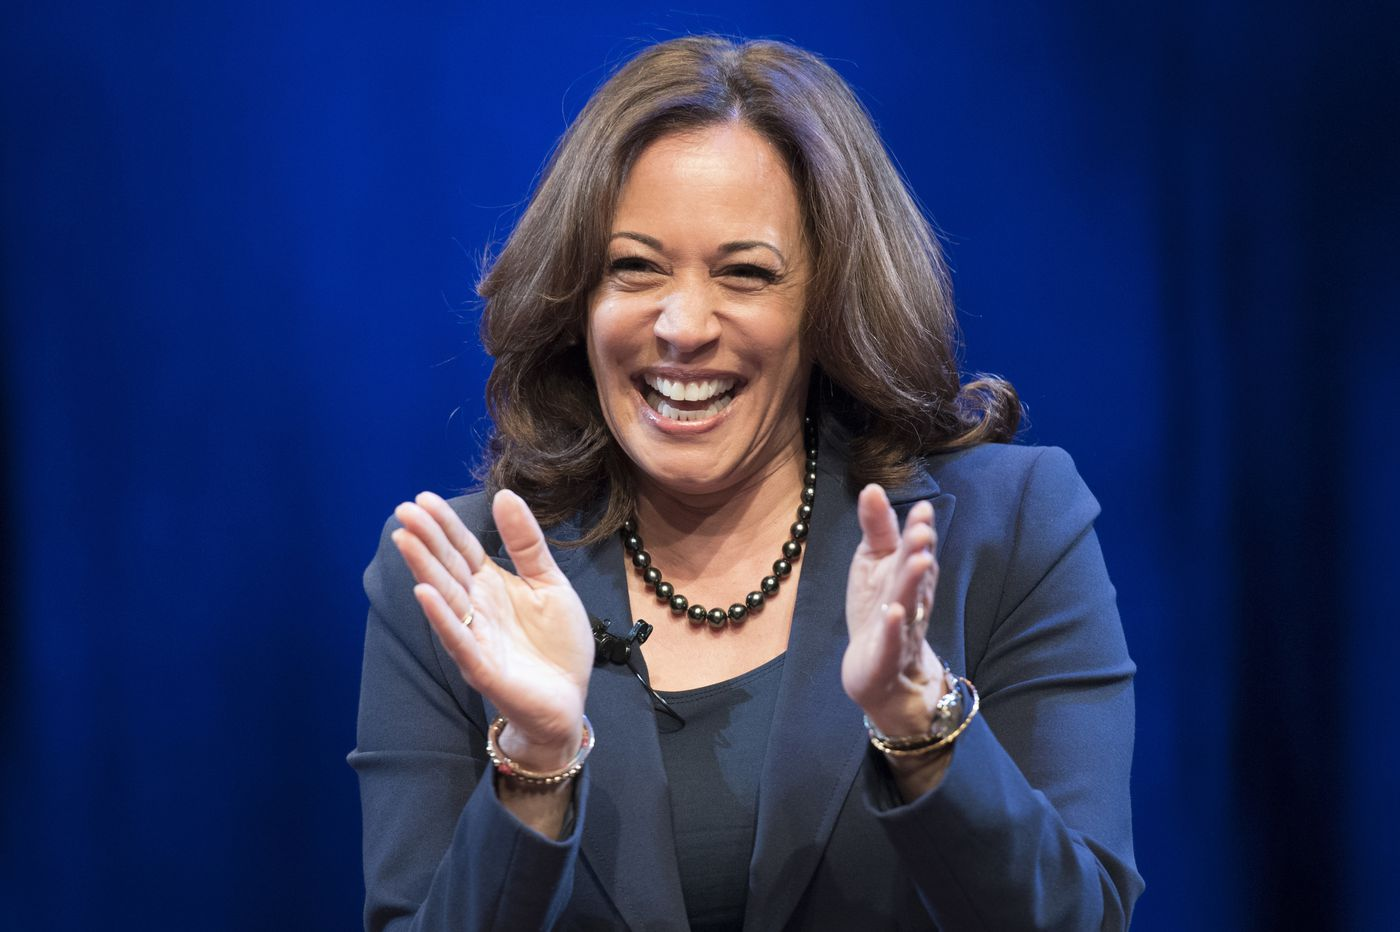 Kamala Harris launches 2020 White House bid